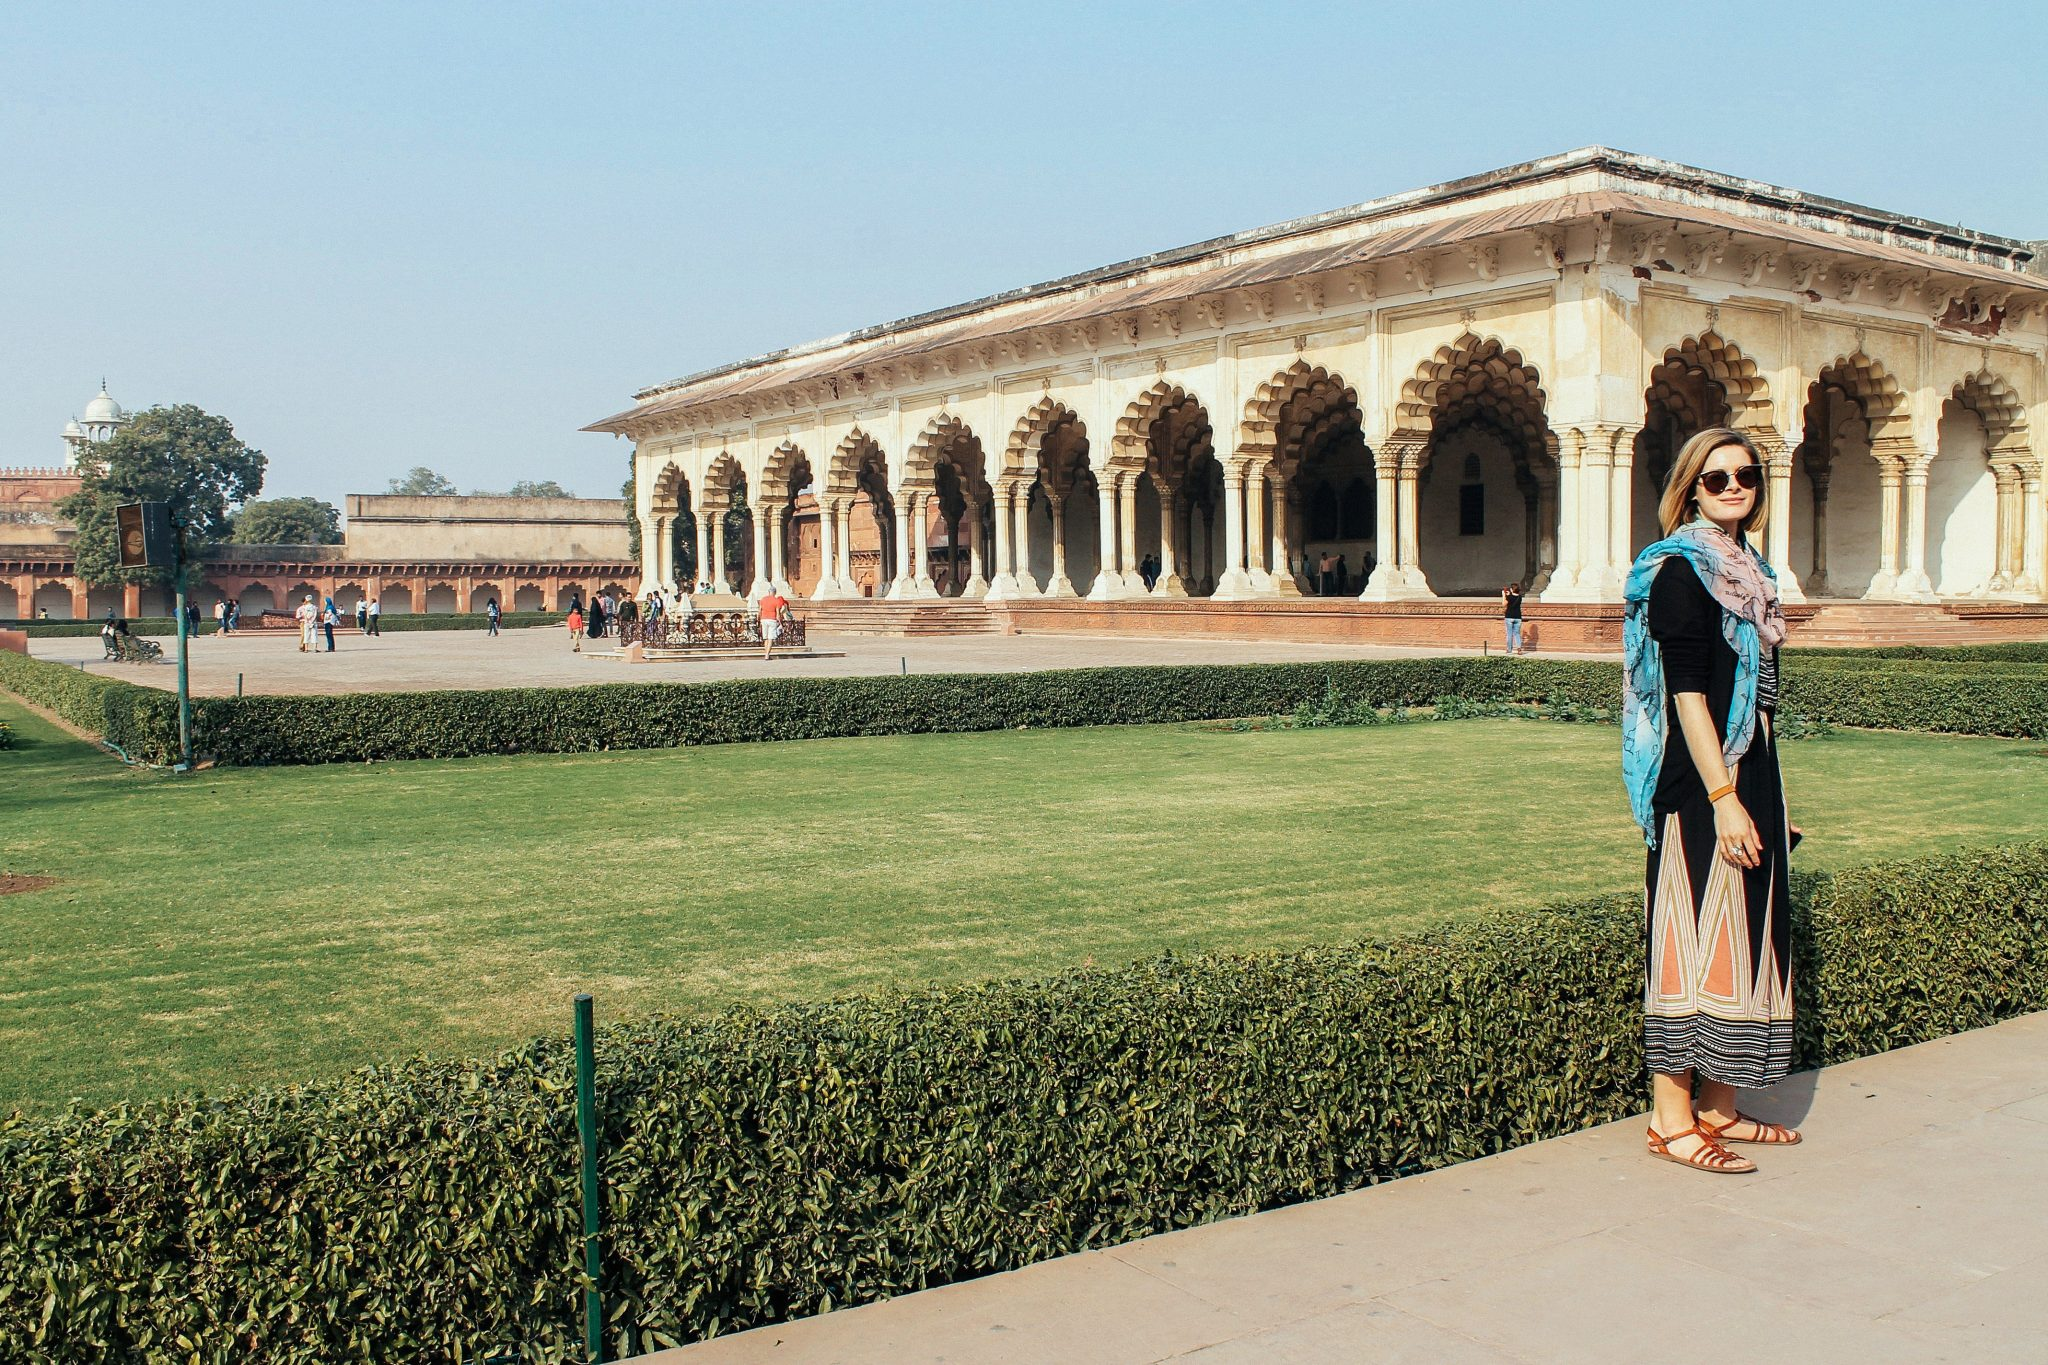 Agra Fort, Agra Attractions | India Trip | india in 2 weeks